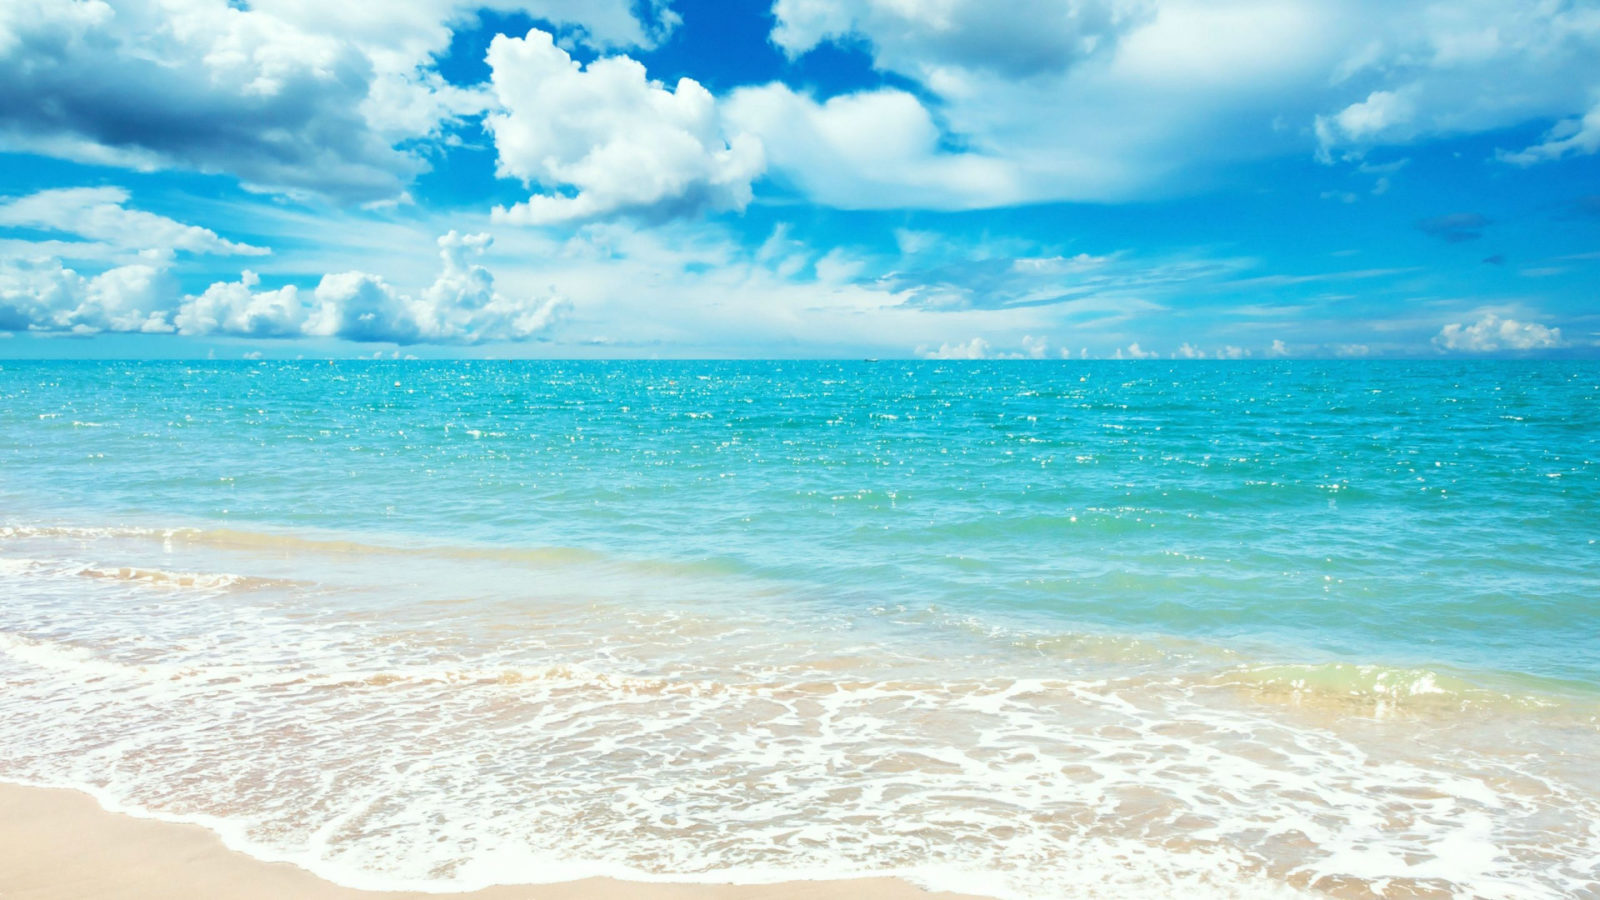 Best Beach Wallpaper: 129 Beach Wallpaper Examples To Put On Your Desktop Background